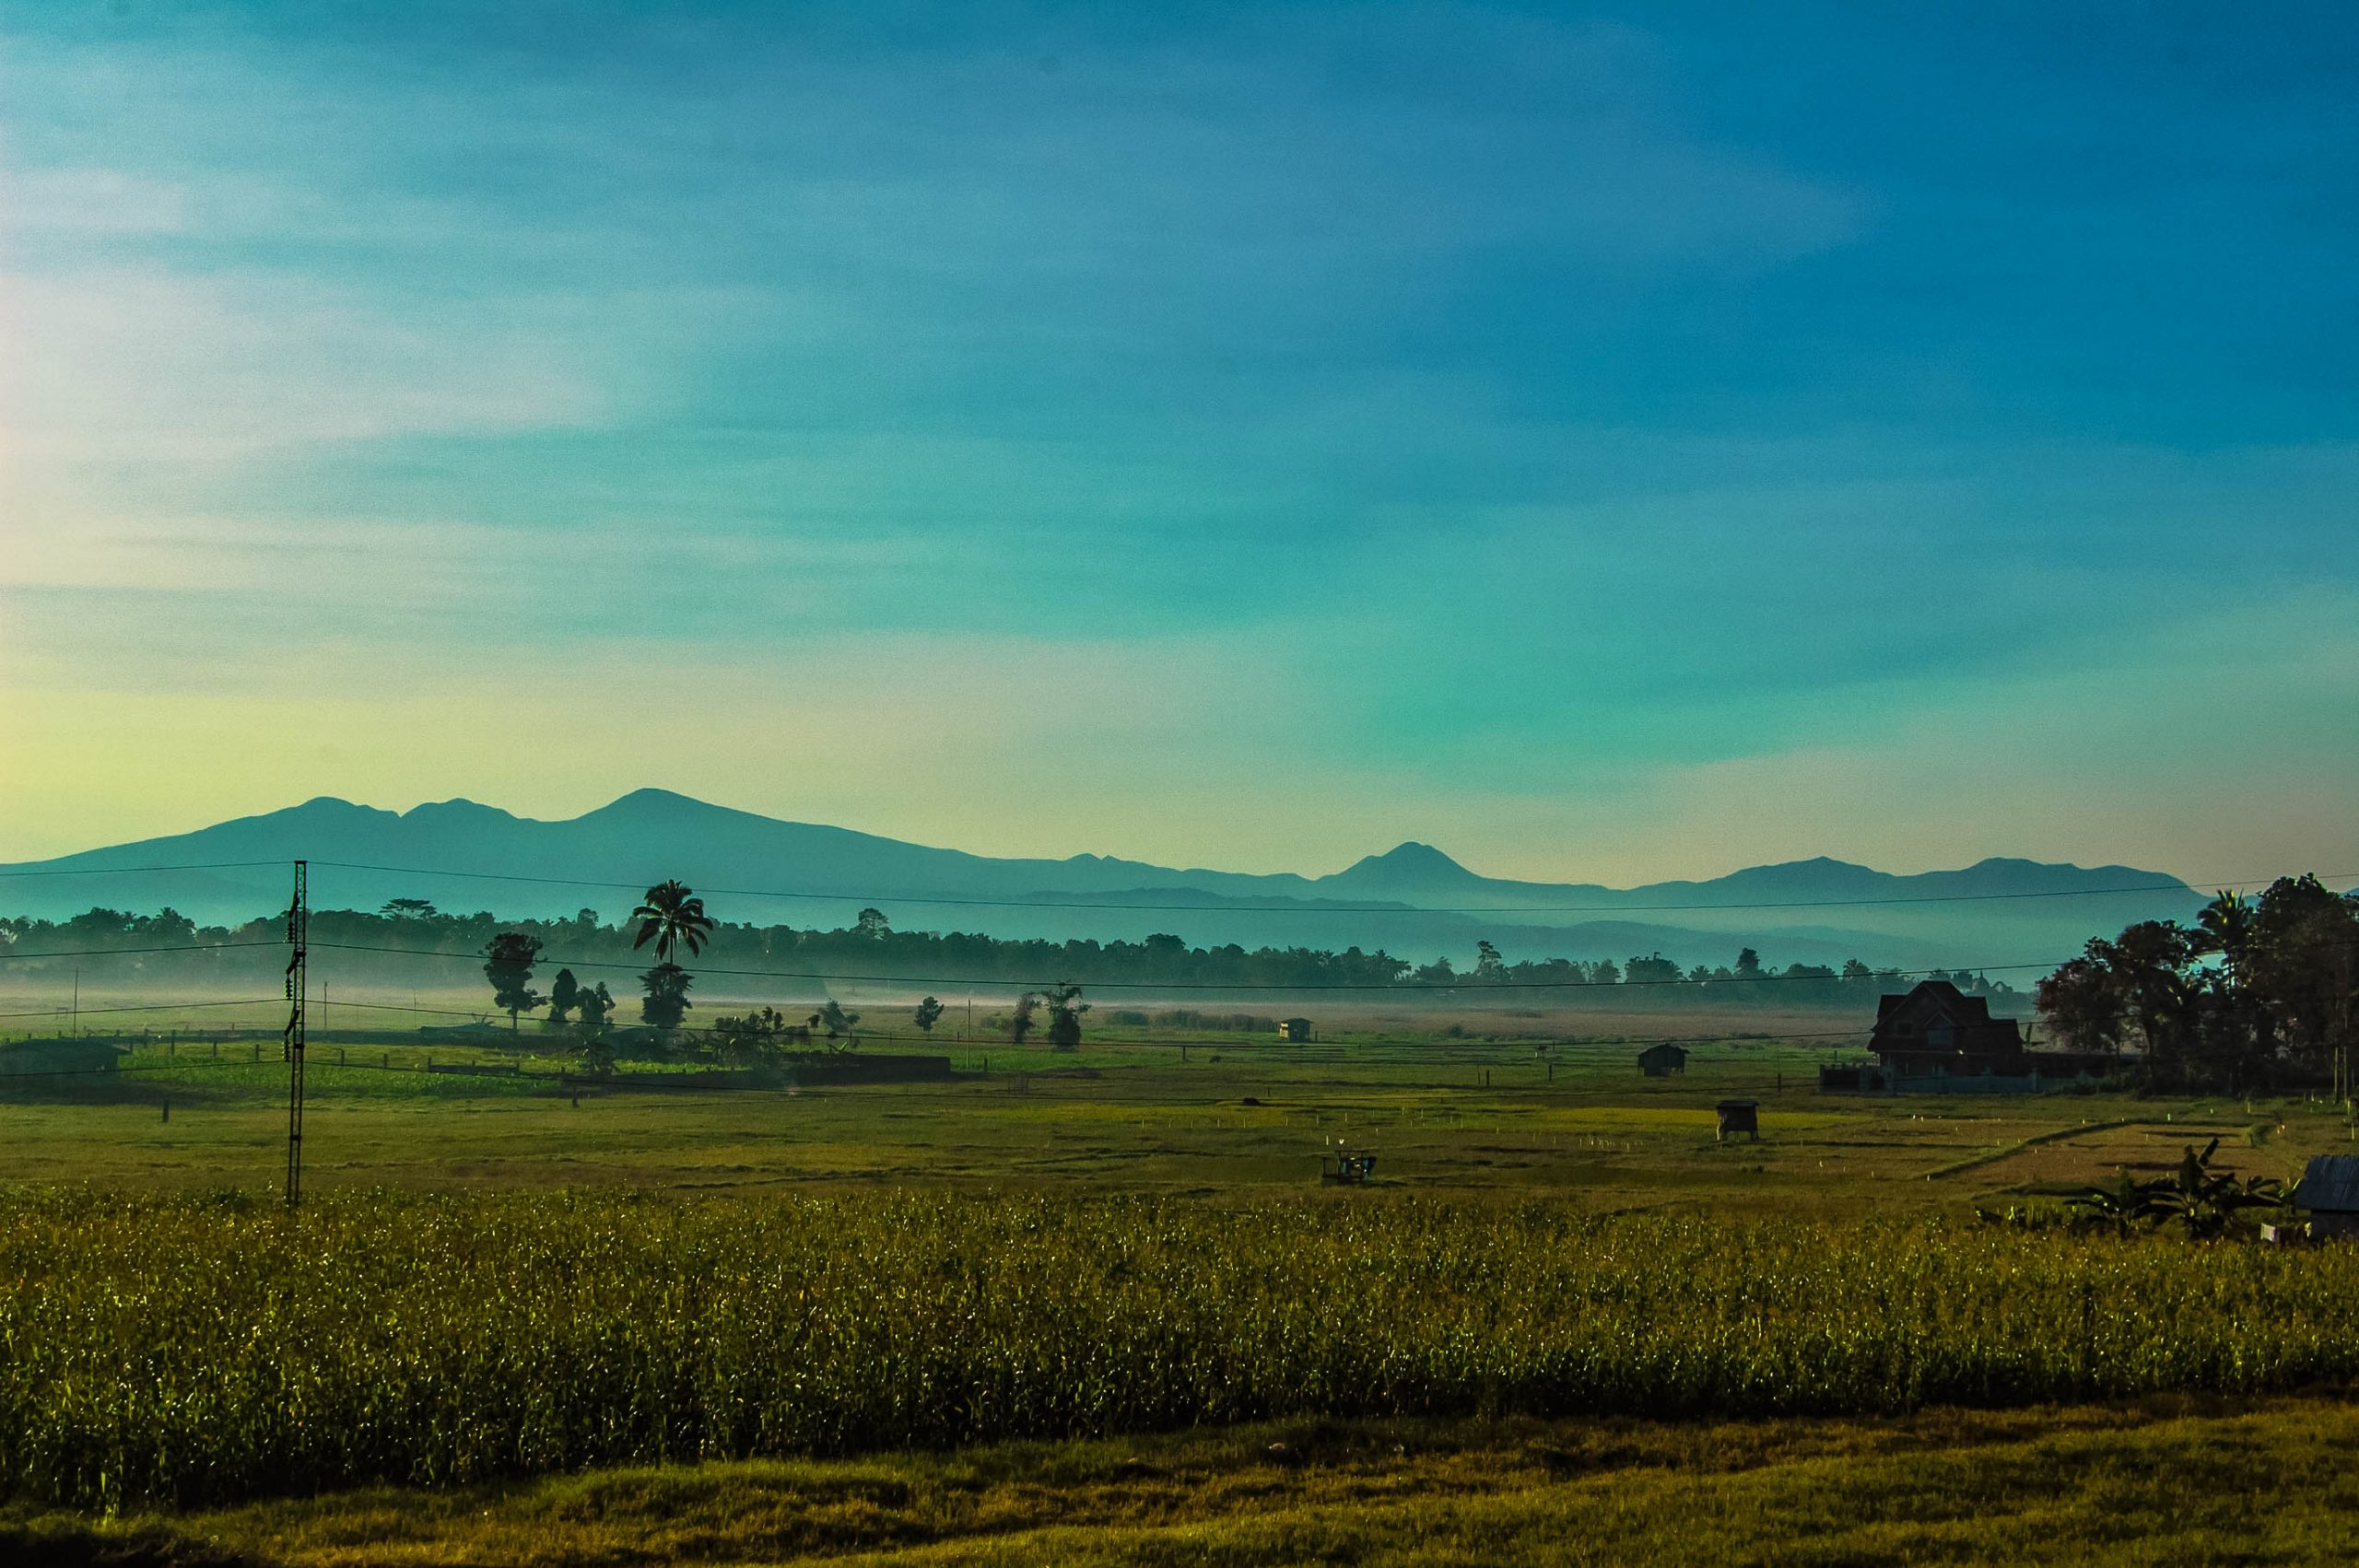 A view of green field planted with crops, behind which rises a mountain range (the Piapayungan Mountain Range, whose highest peak is Mount Piapayungan, one of the highest mountains in the Philippines)